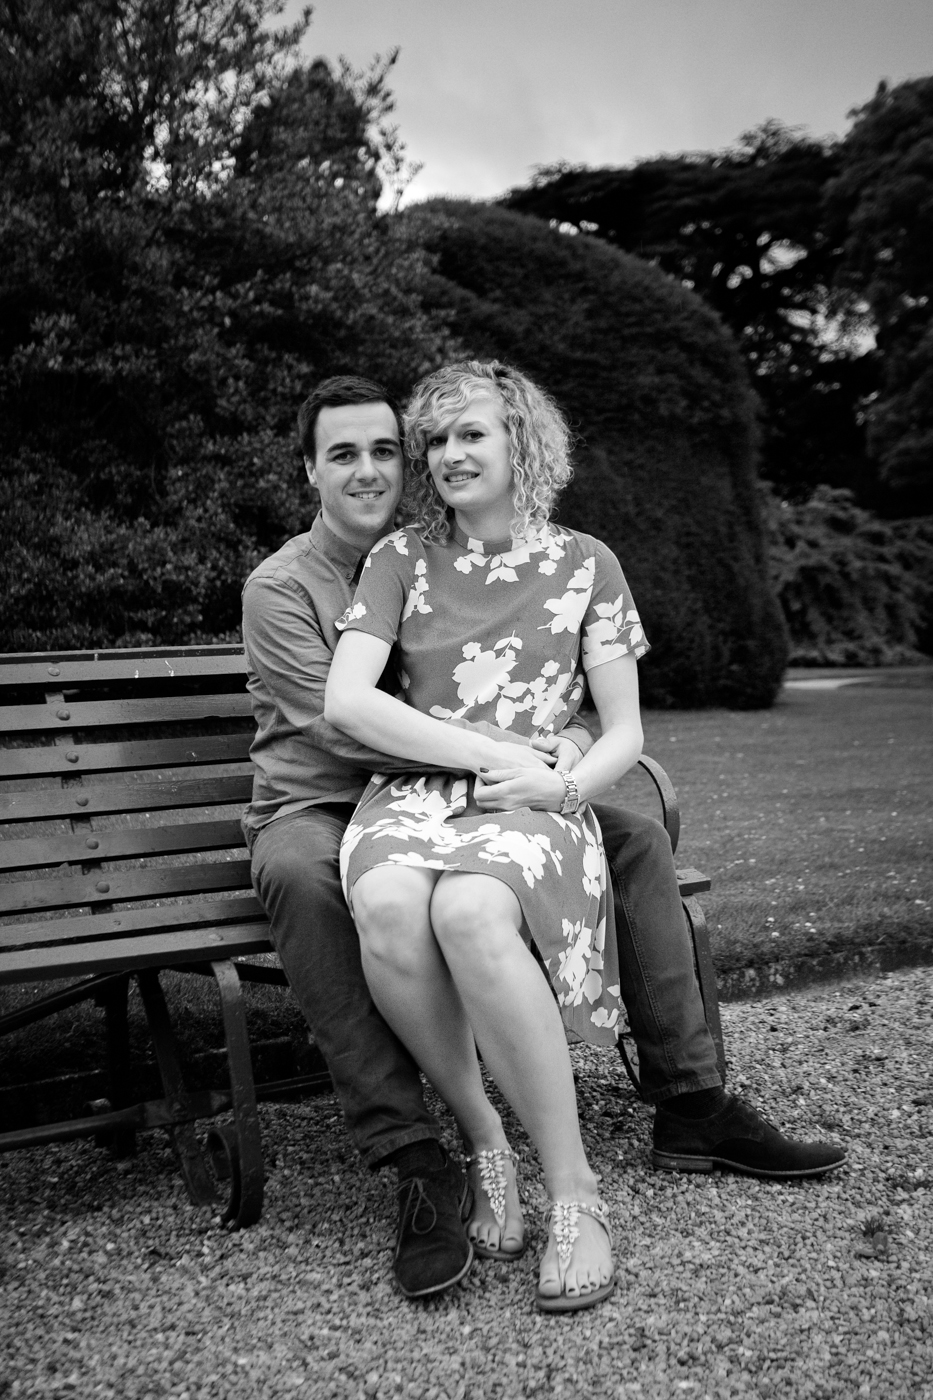 082 -  Sarah and Davids preWED at Stoke Rochford Hall by www.markpugh.com - 0086.JPG